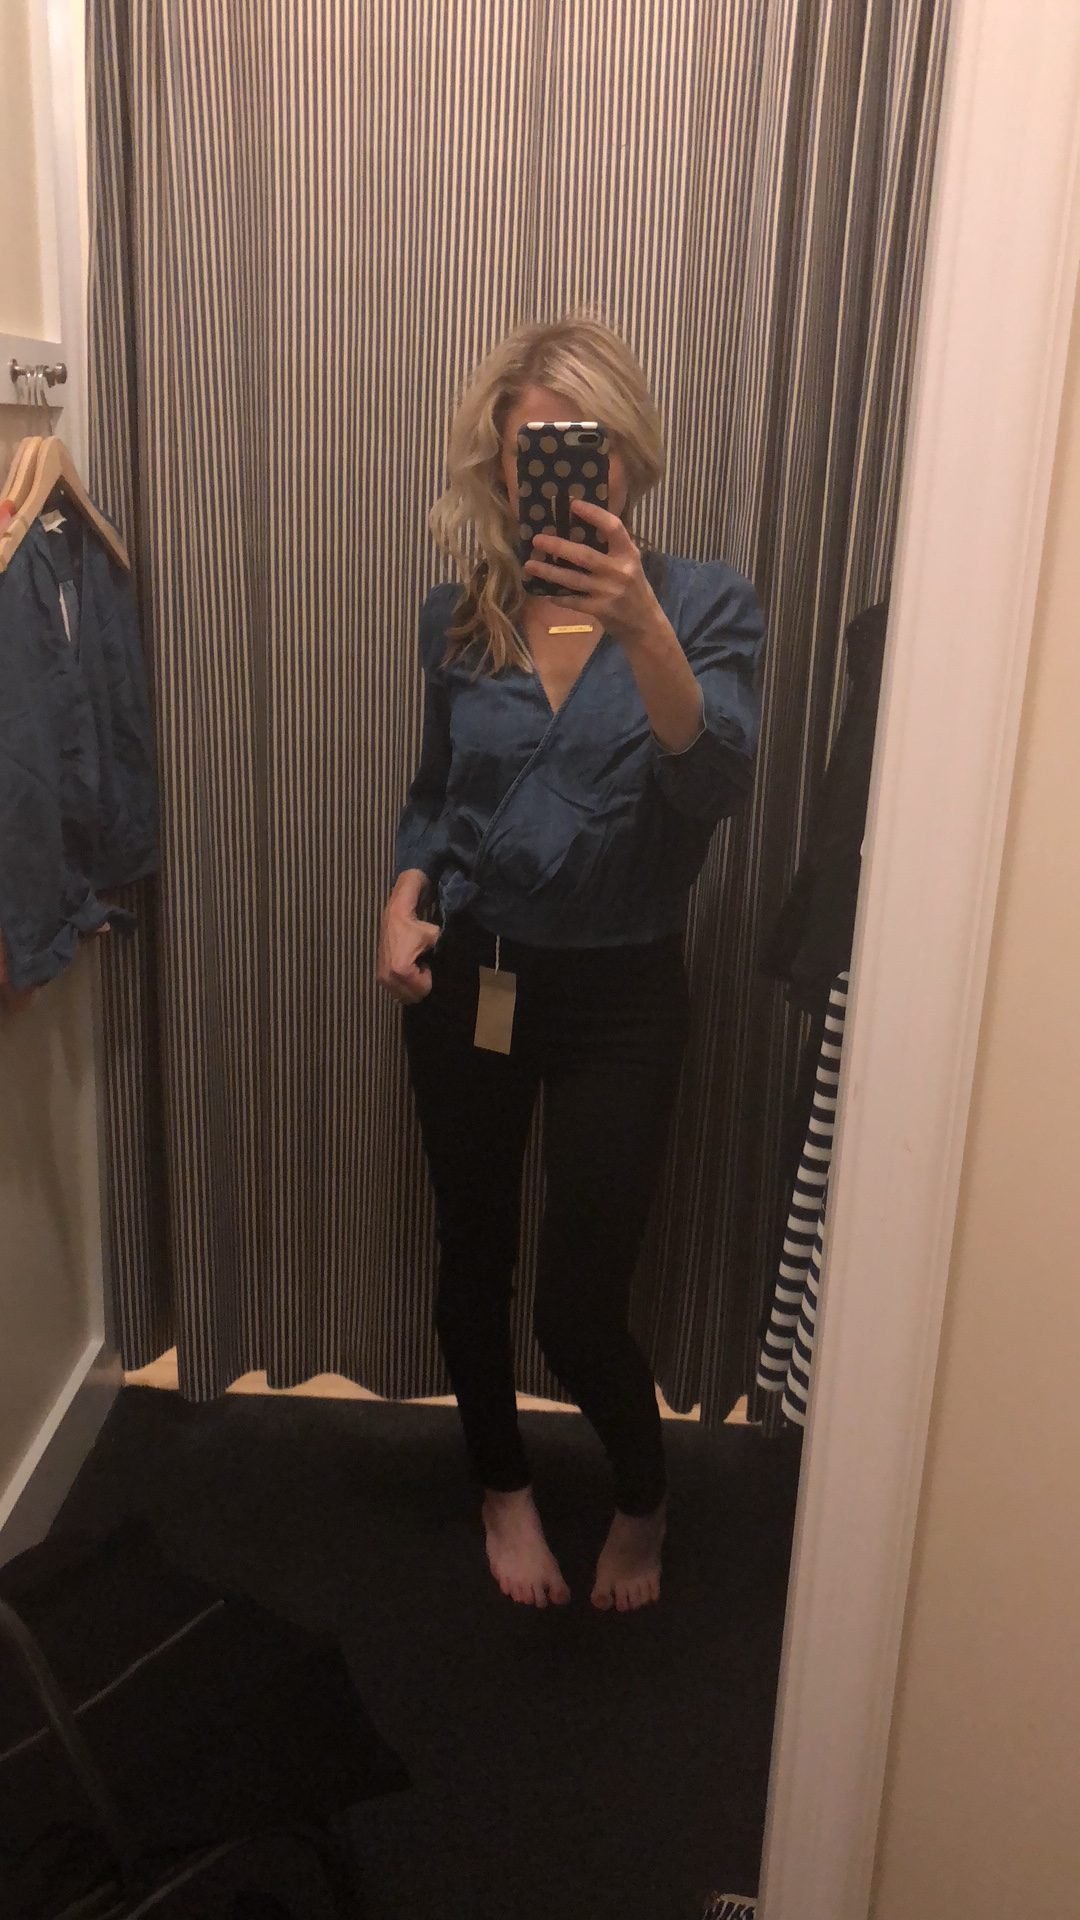 ddc37bd59d Madewell Clothing Try-On Session